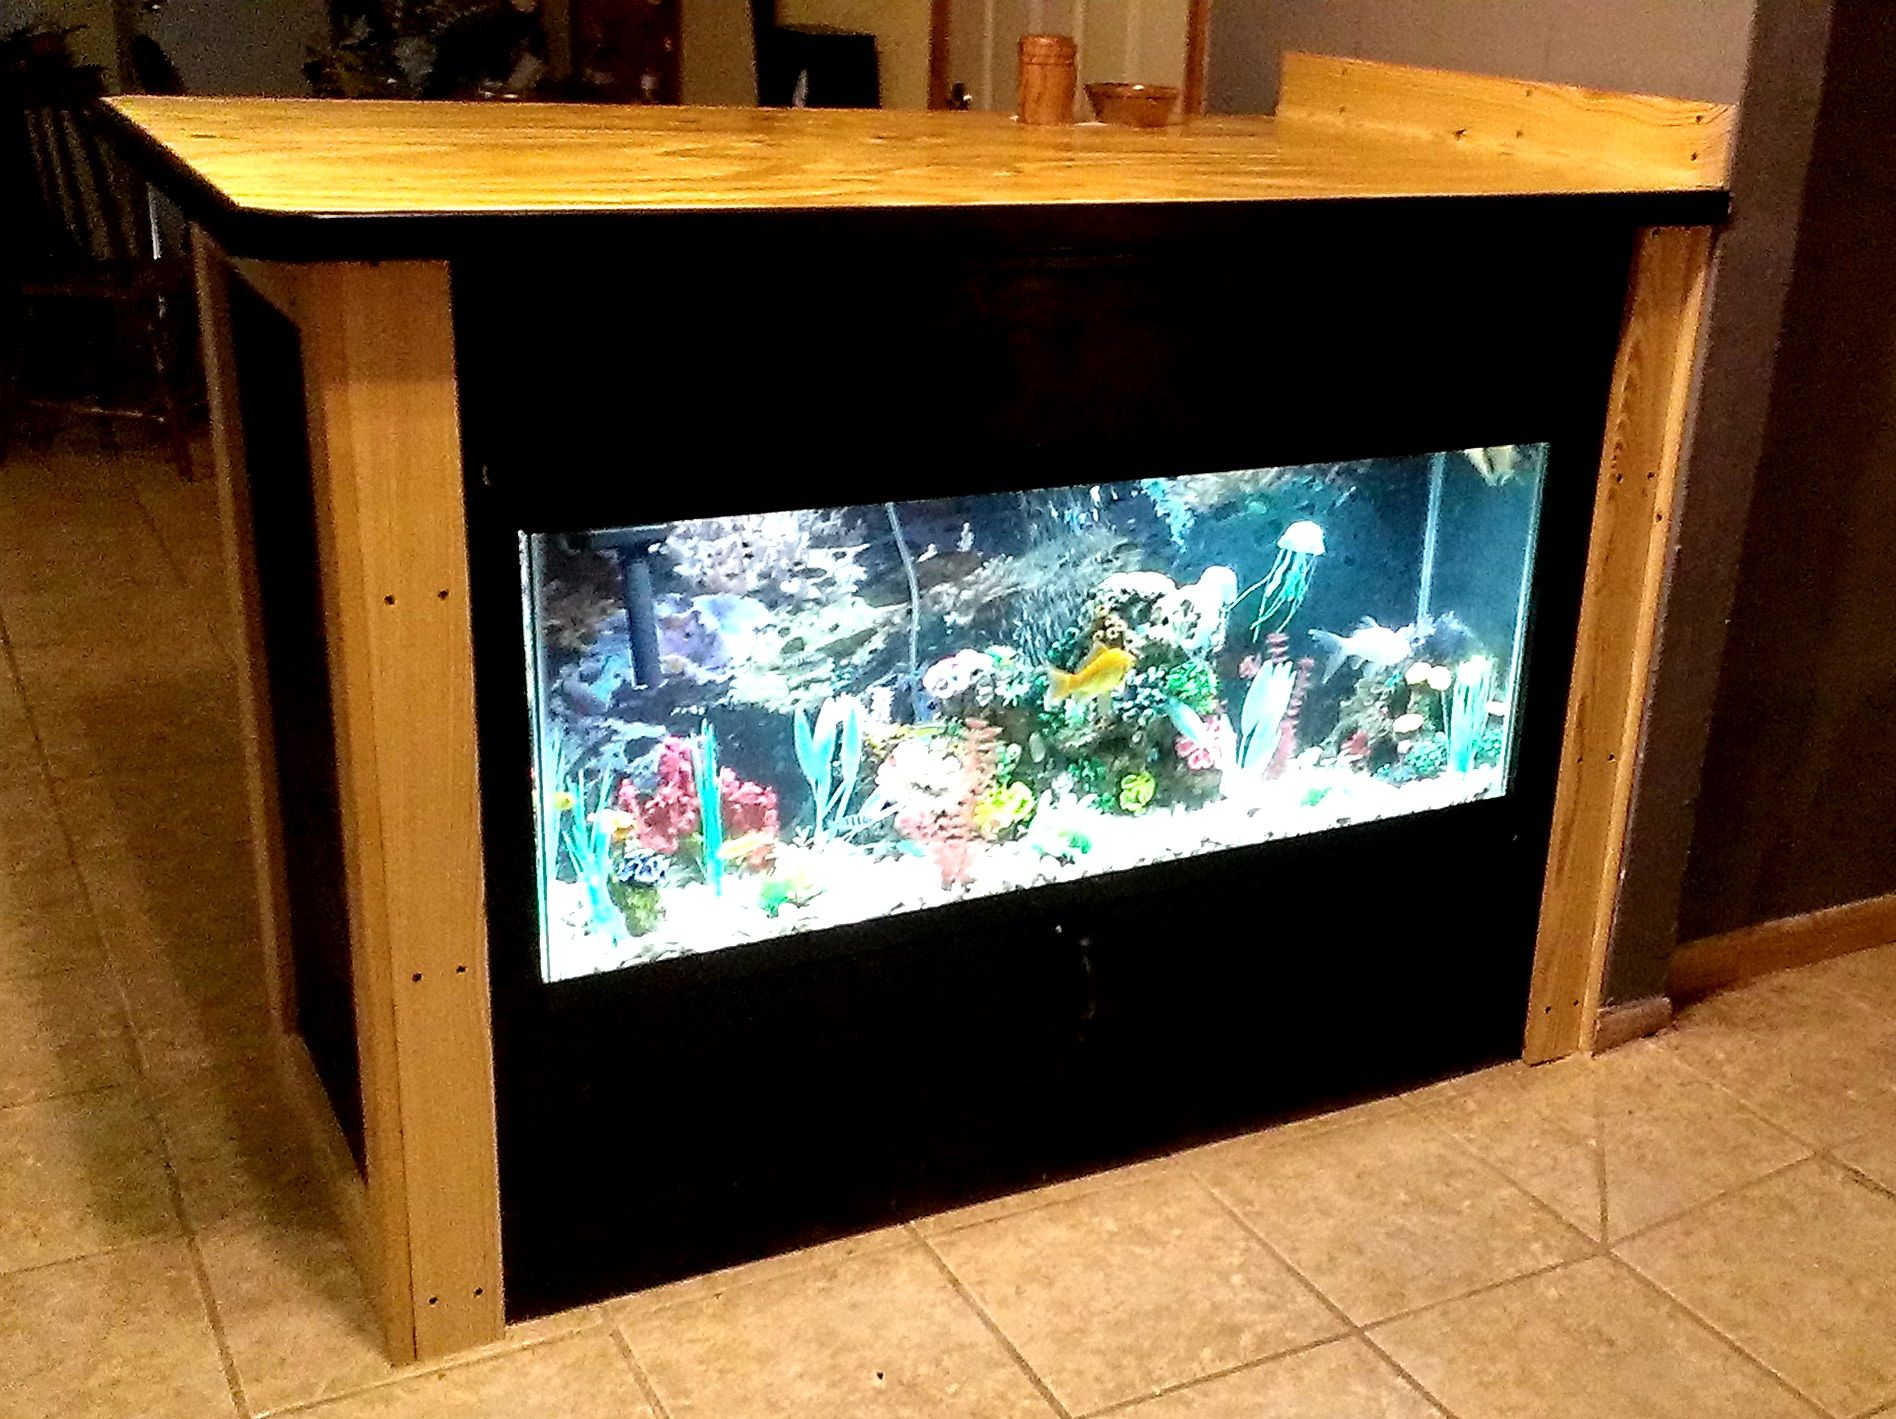 custom freestanding bar fish tank unit Design Pinterest